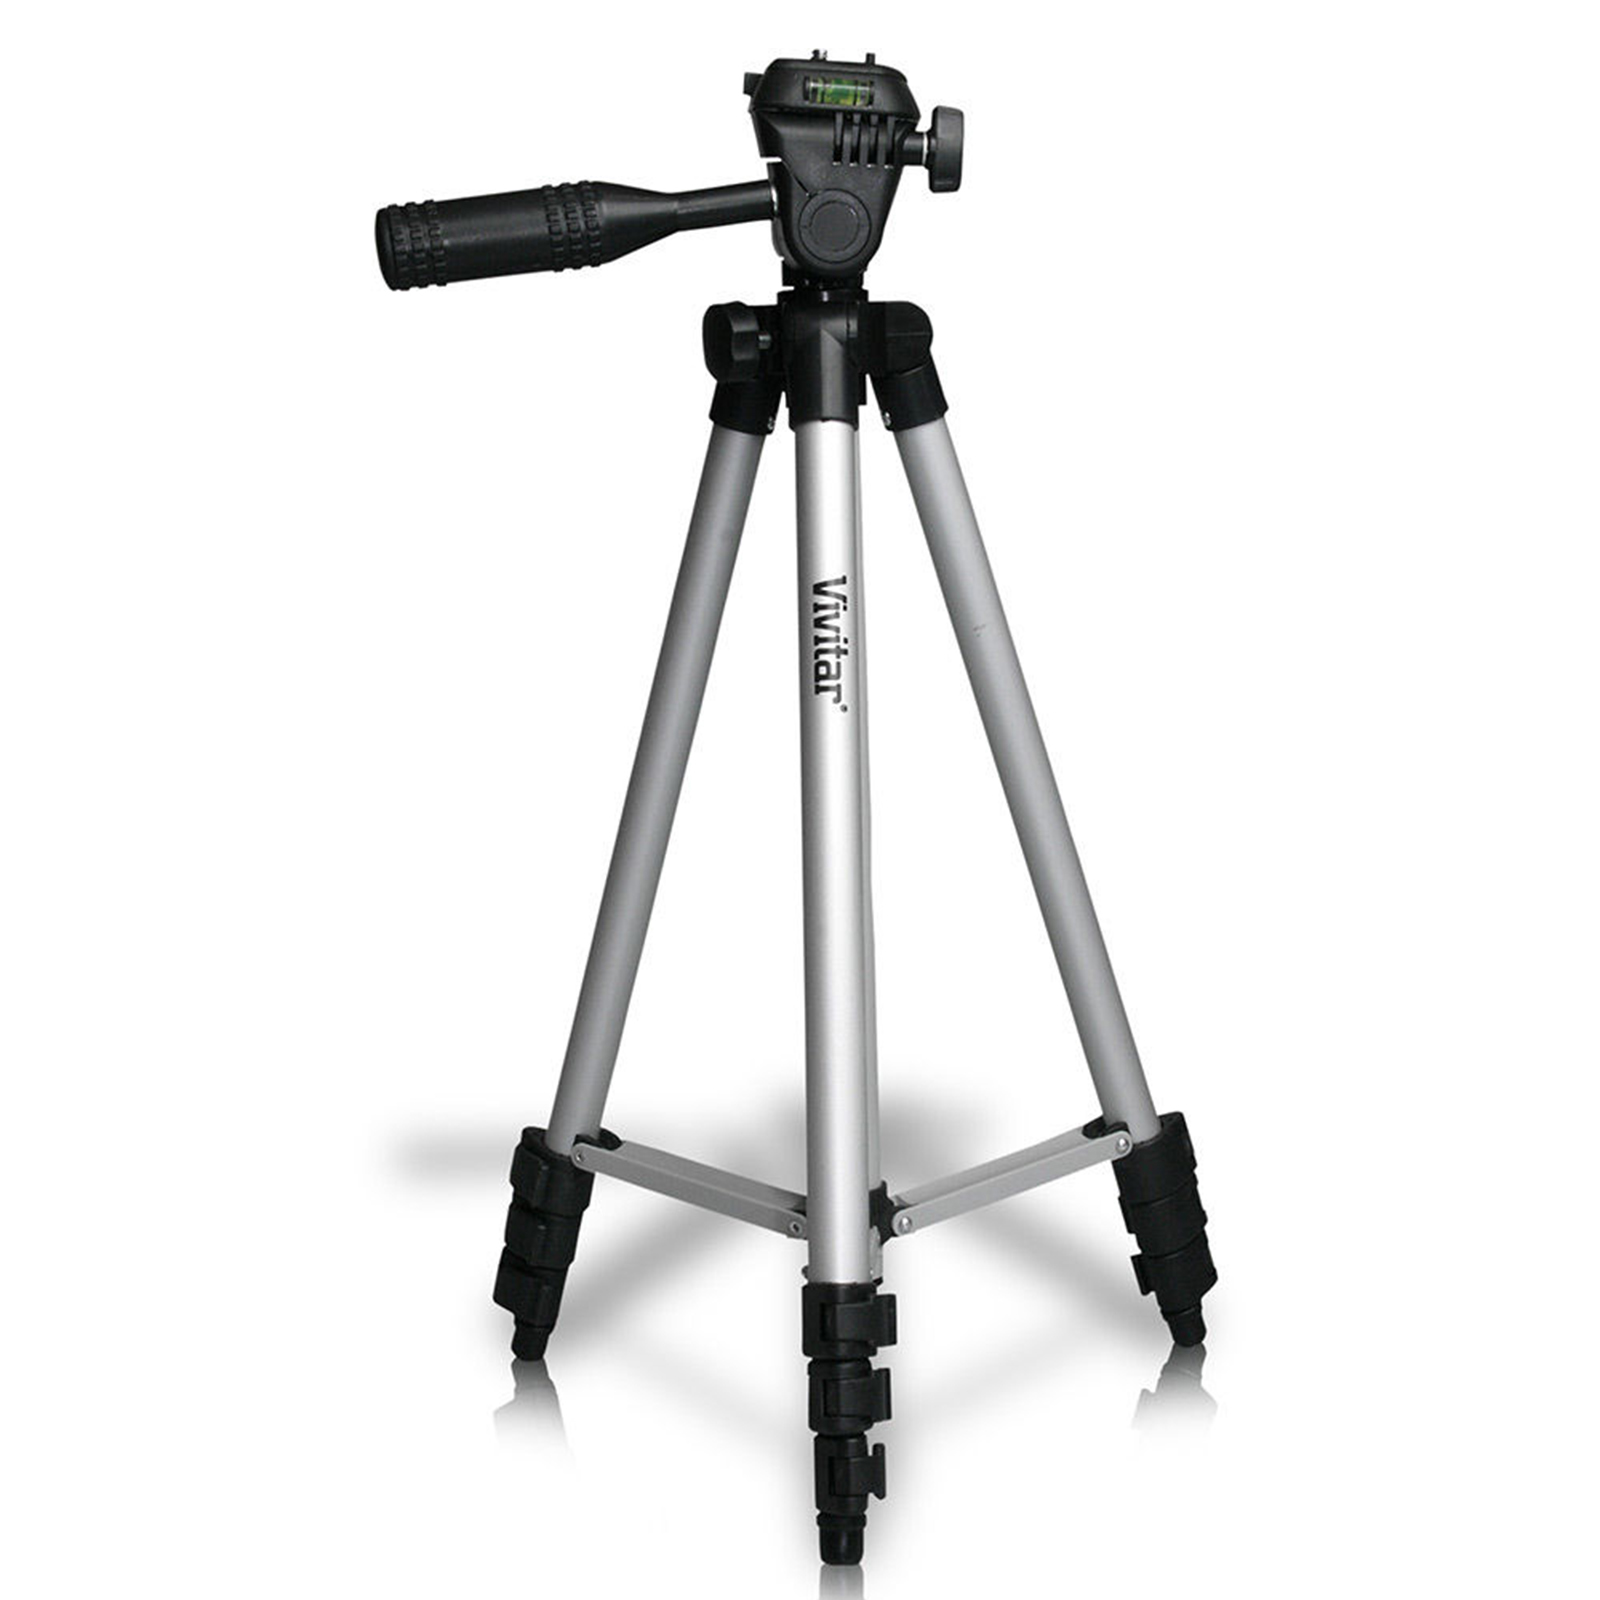 for Digital Cameras and Camcorders Approx Height 13 inches Panasonic Lumix DMC-G5 Digital Camera Tripod Flexible Tripod